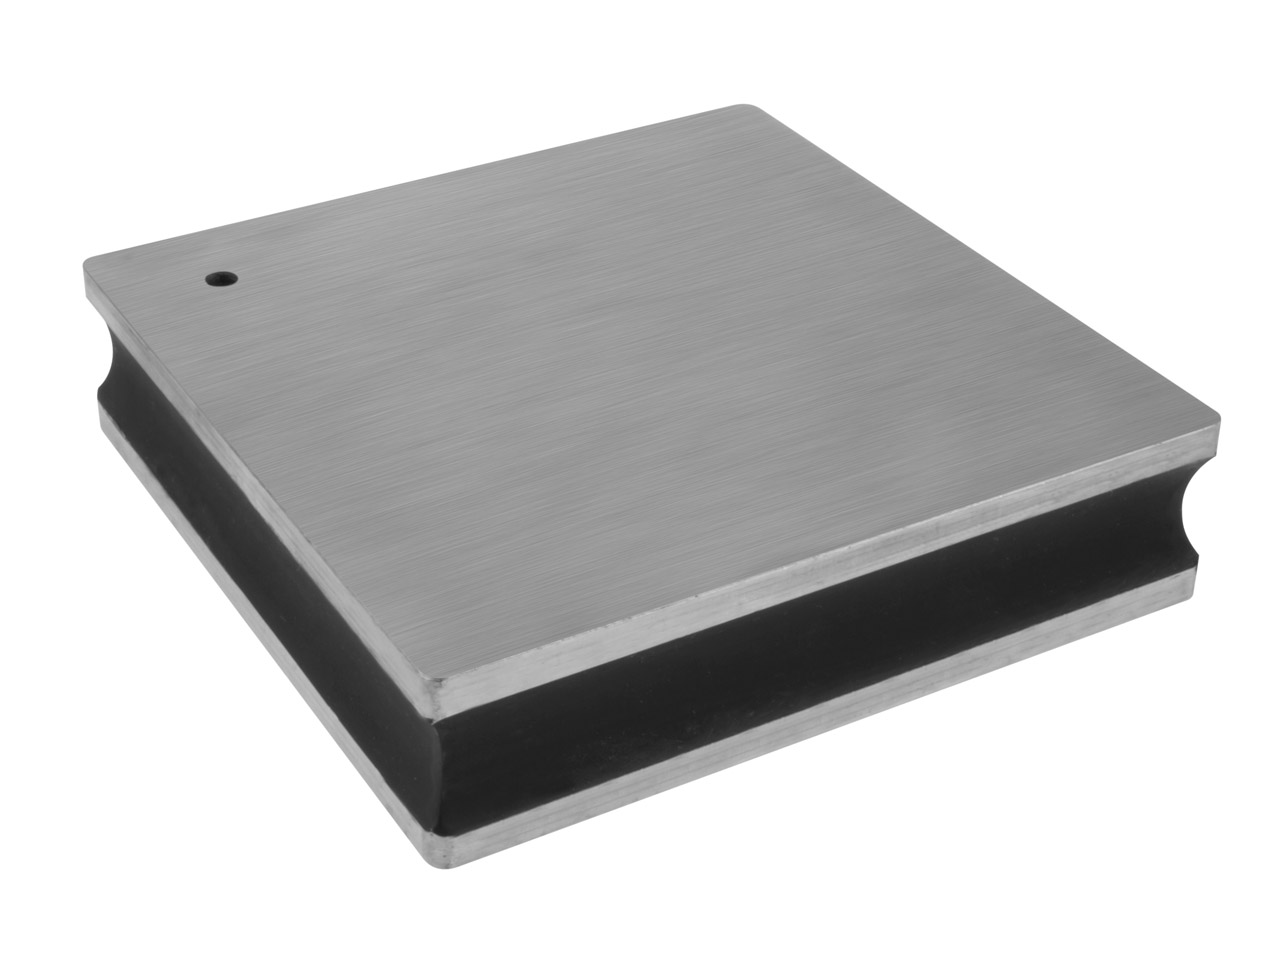 Large Deluxe Steel Bench Block 10.2 X 10.2 X 2.5cm